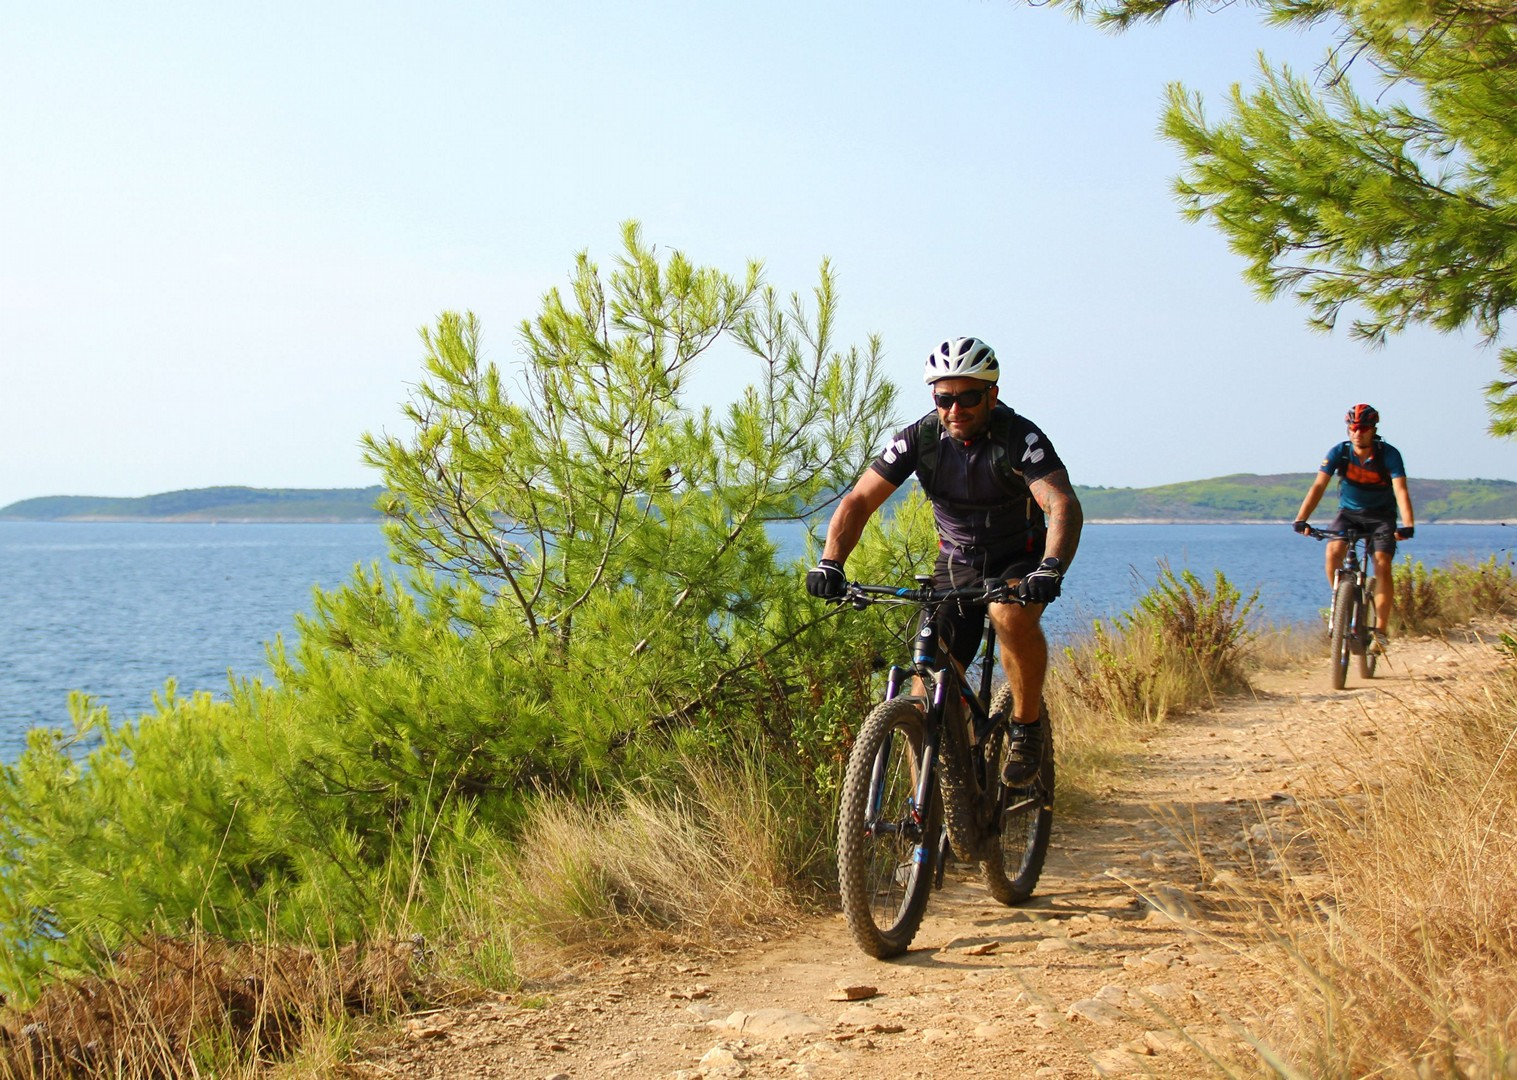 biking-in-croatia-guided-holiday-skedaddle.JPG - NEW! Croatia - Terra Magica - Mountain Biking